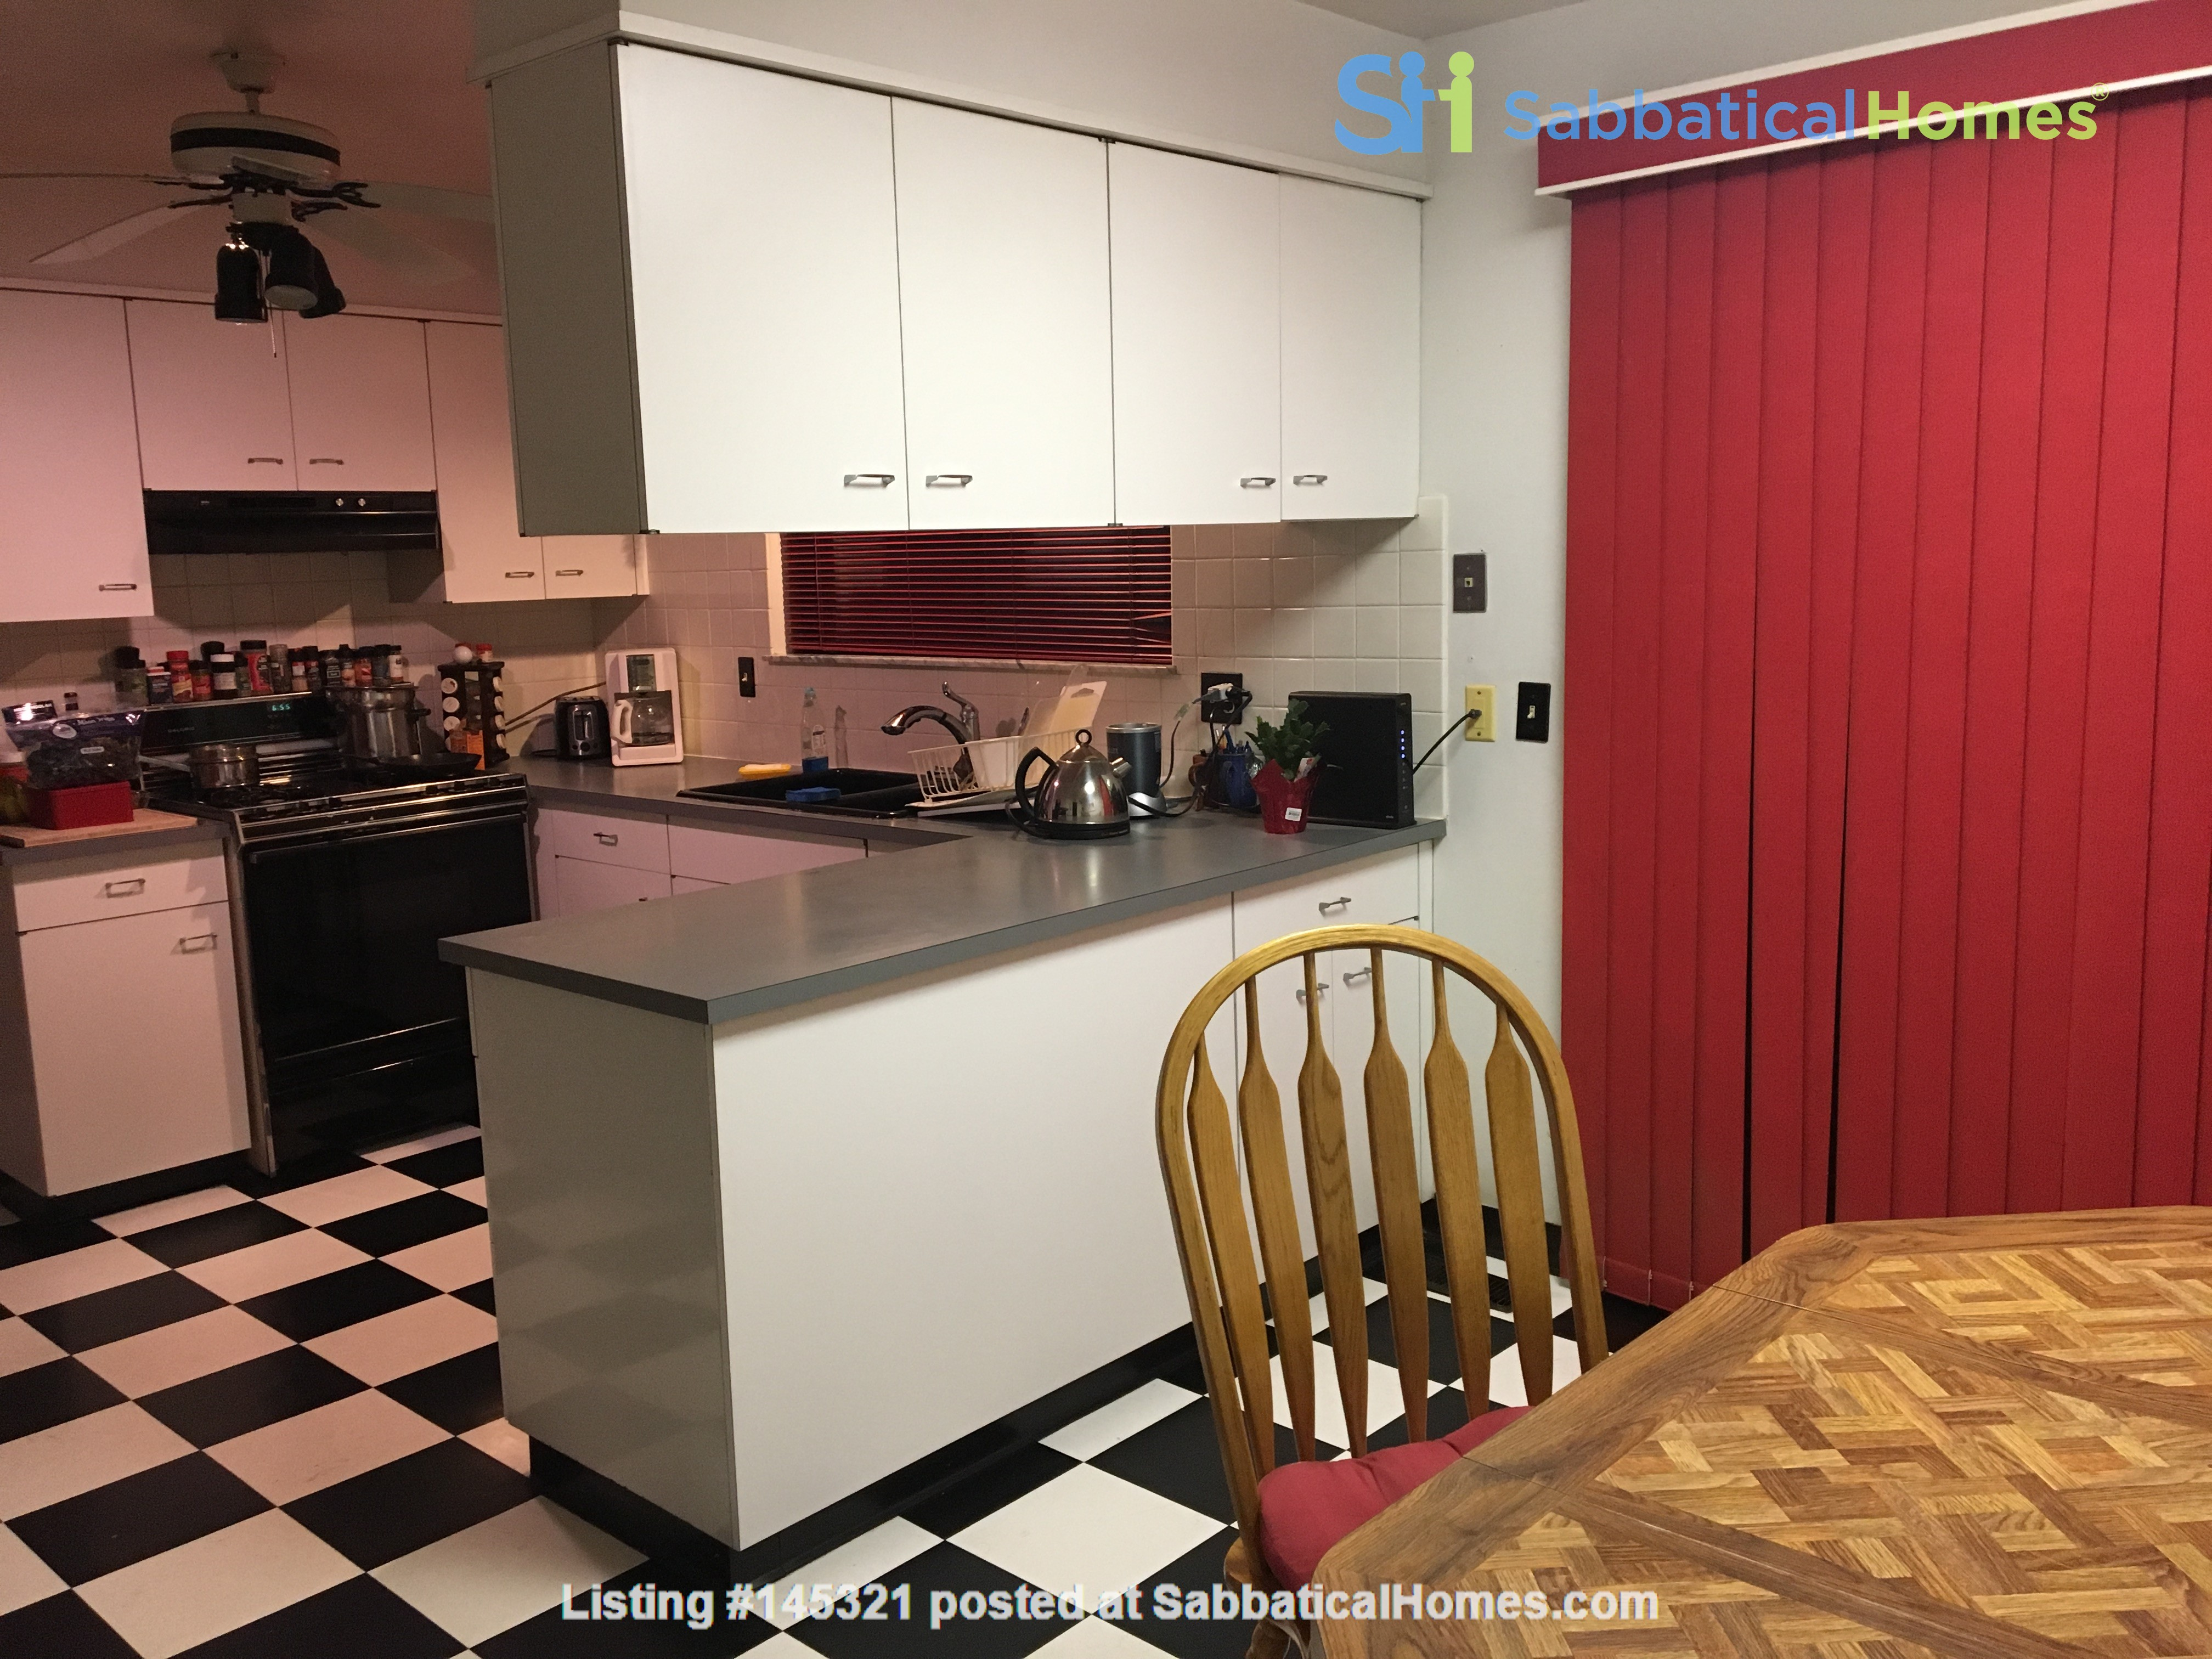 Lovely four bedroom house, wooded setting near UM Central campus & hospital Home Rental in Ann Arbor, Michigan, United States 5